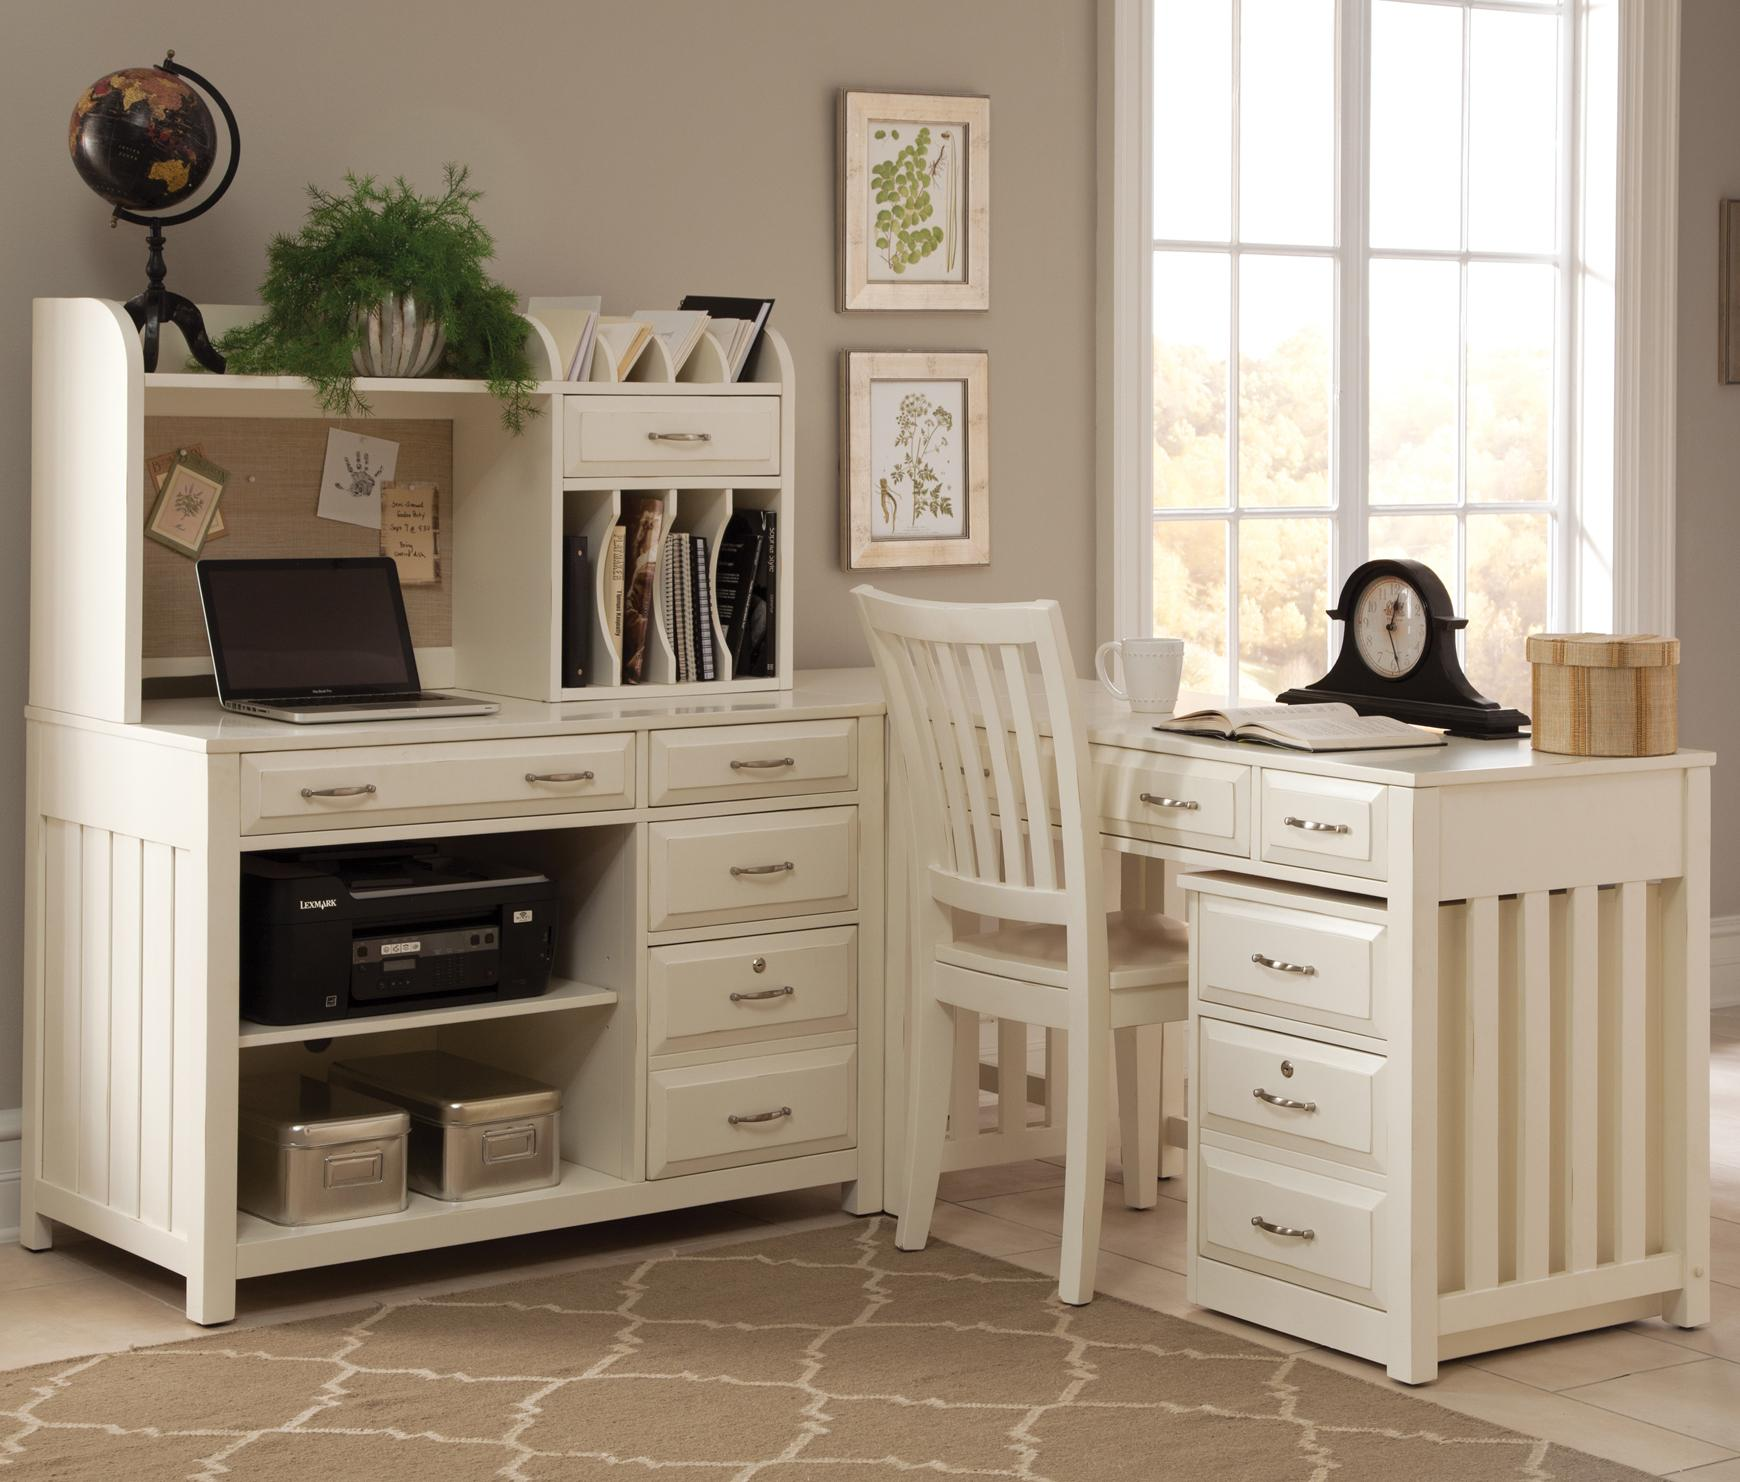 Fabulous 5 Piece L-Shaped Desk and File Cabinet Unit by Liberty Furniture  RM12